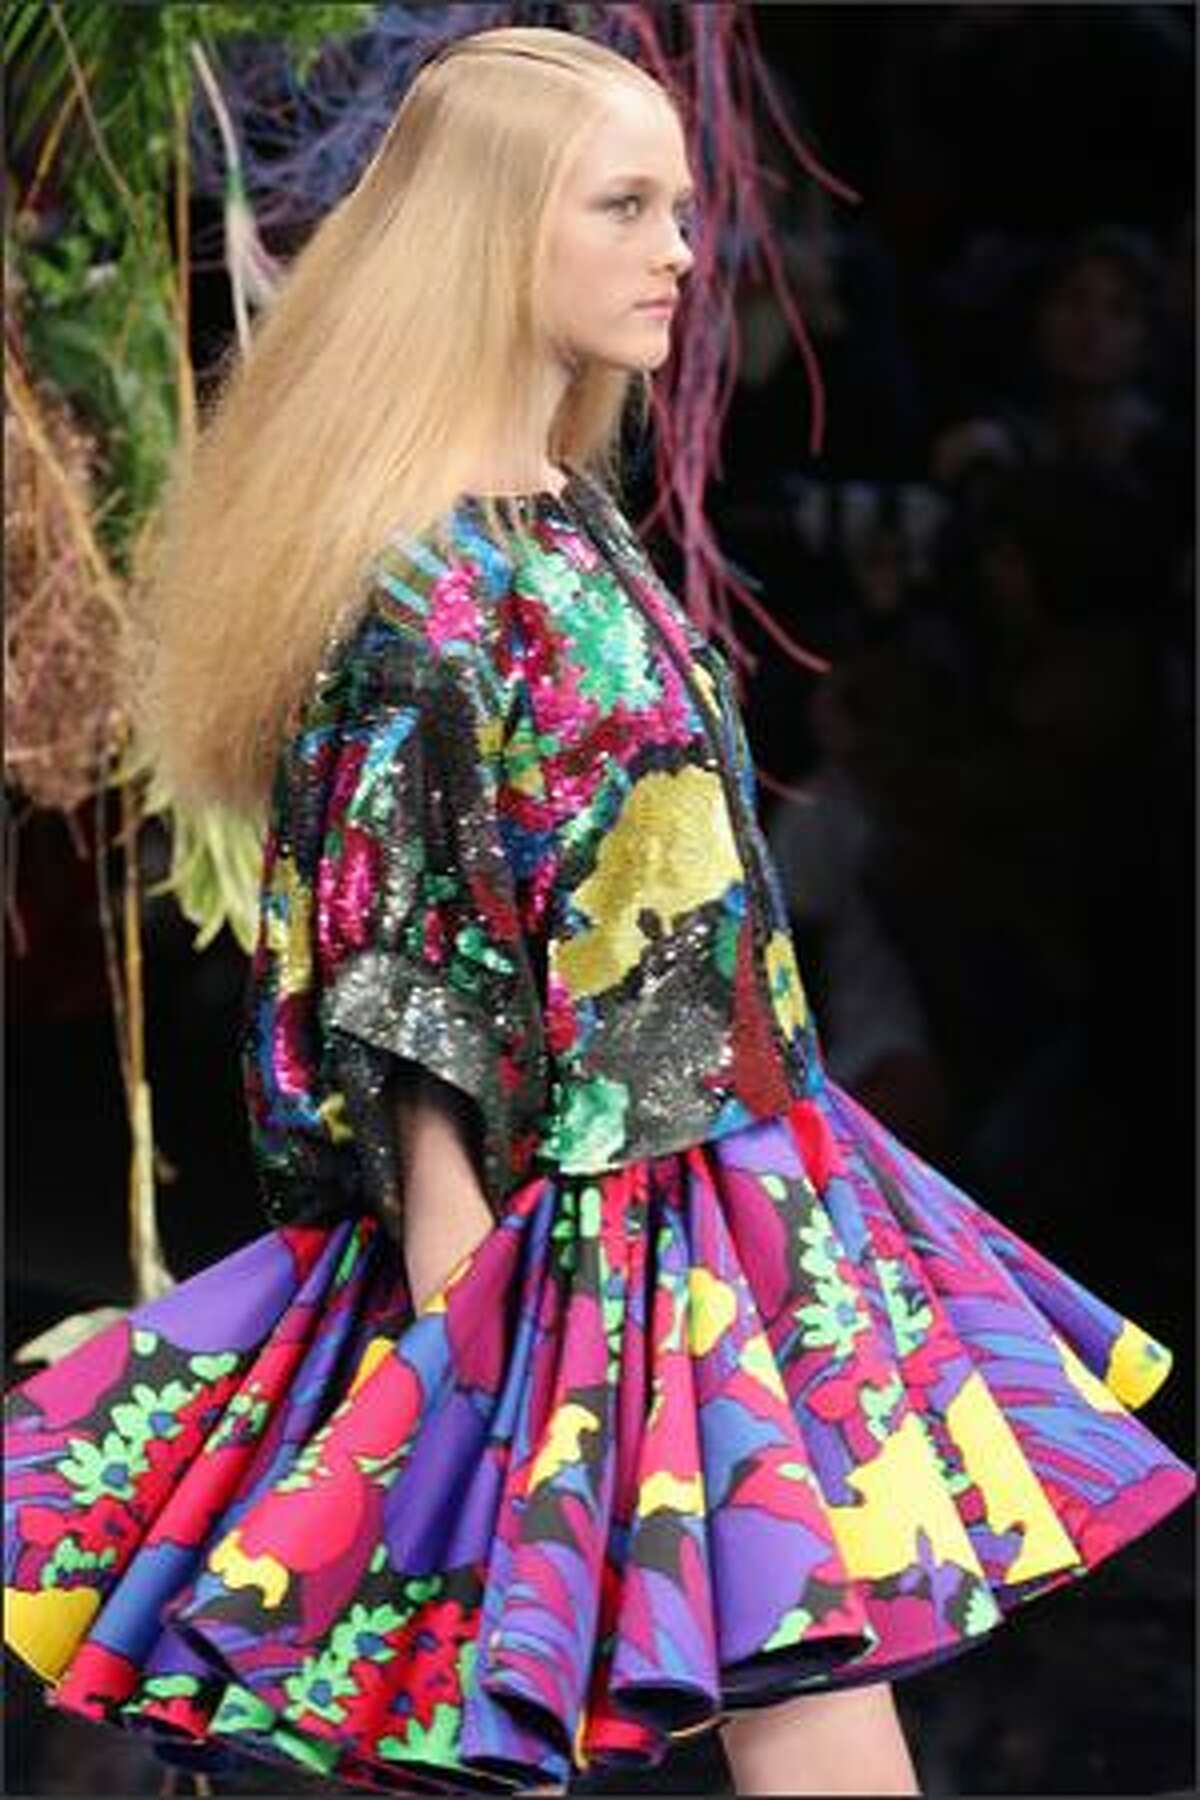 A model presents a creation by Italian designer Antonio Marras for Kenzo during Spring/Summer 2008 ready-to-wear collection show in Paris, 06 October 2007.